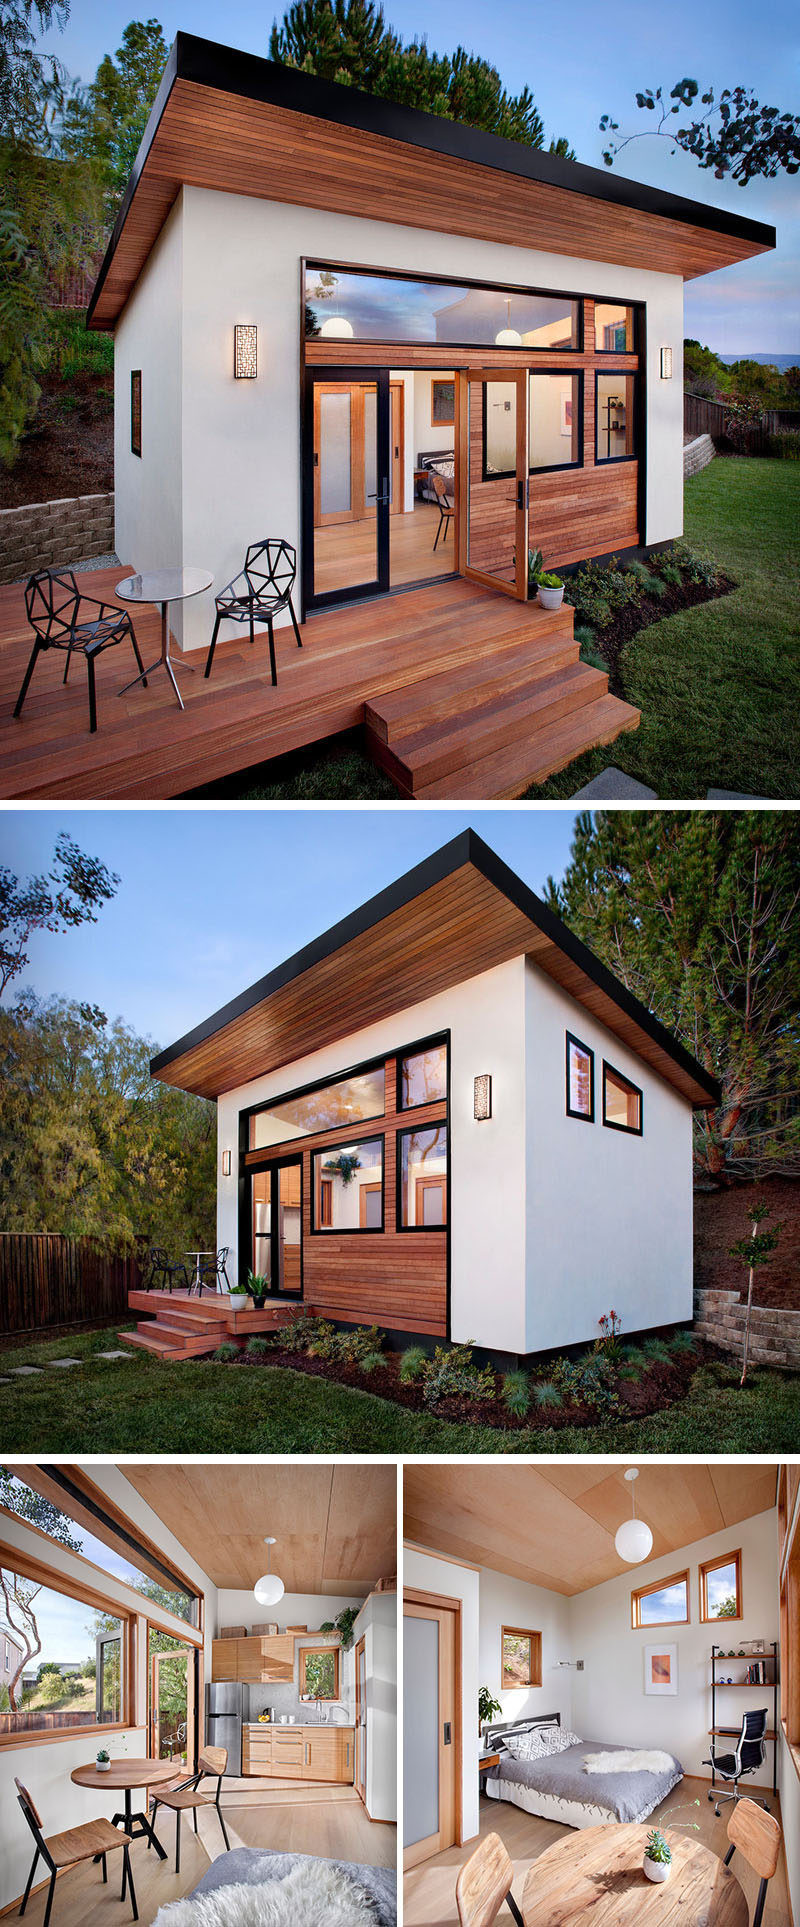 Best ideas about Prefab Backyard Guest House . Save or Pin 14 Inspirational Backyard fices Studios And Guest Now.